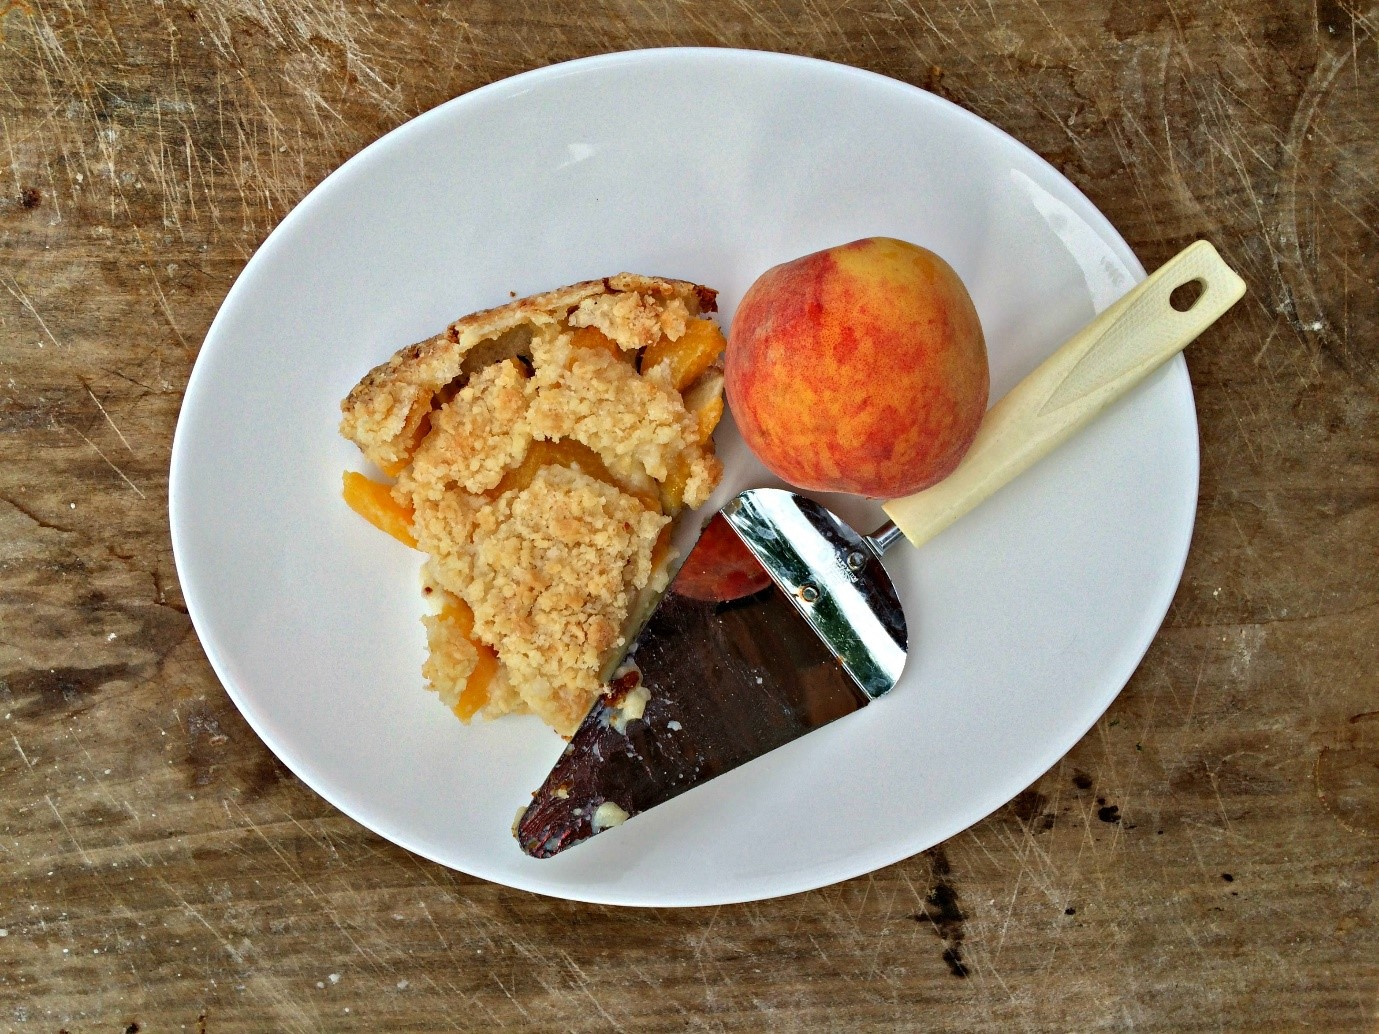 Peaches and Cream Pie with Graham Cracker Crust